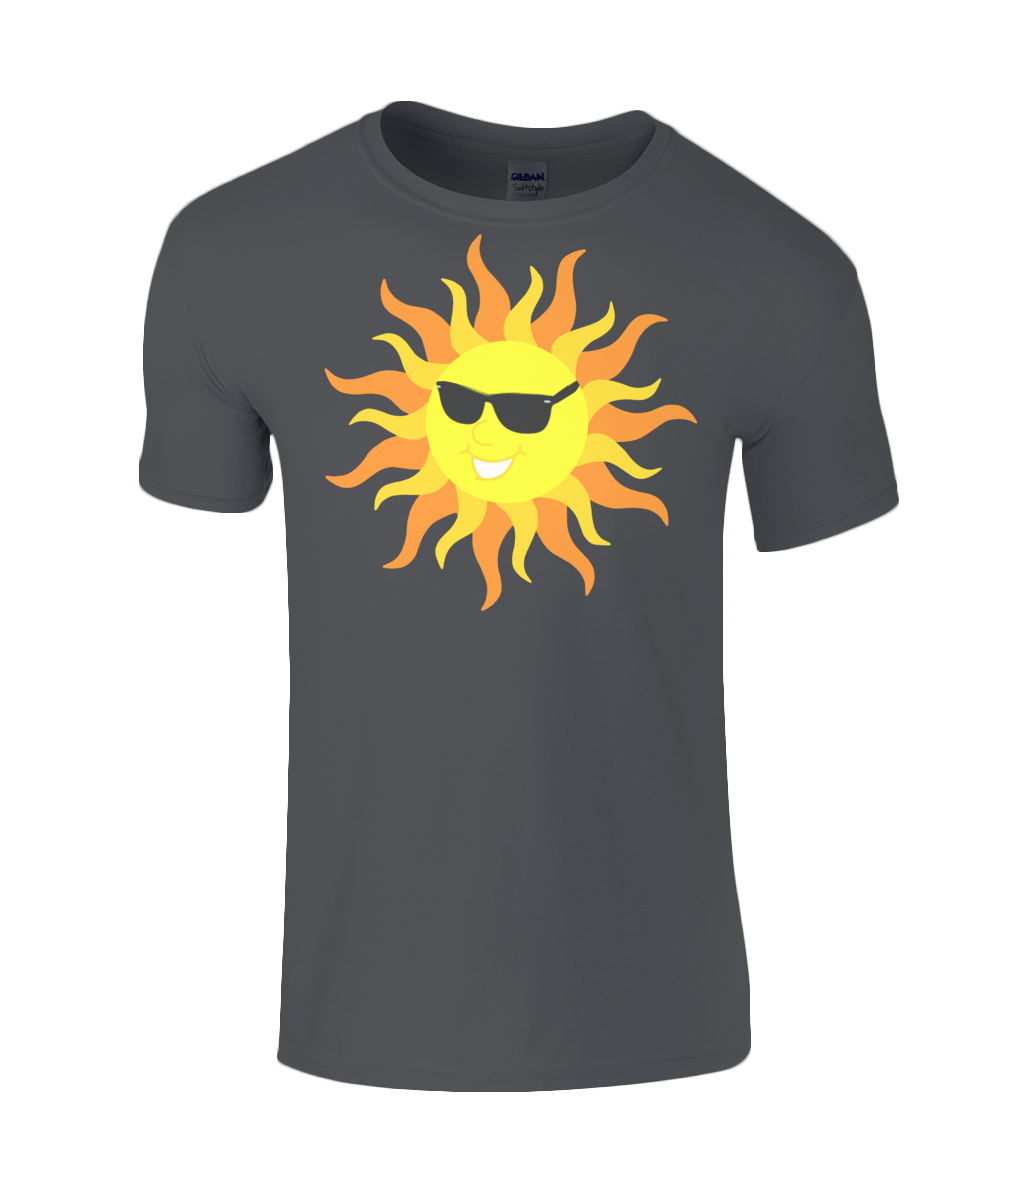 Sun - youth's t-shirt